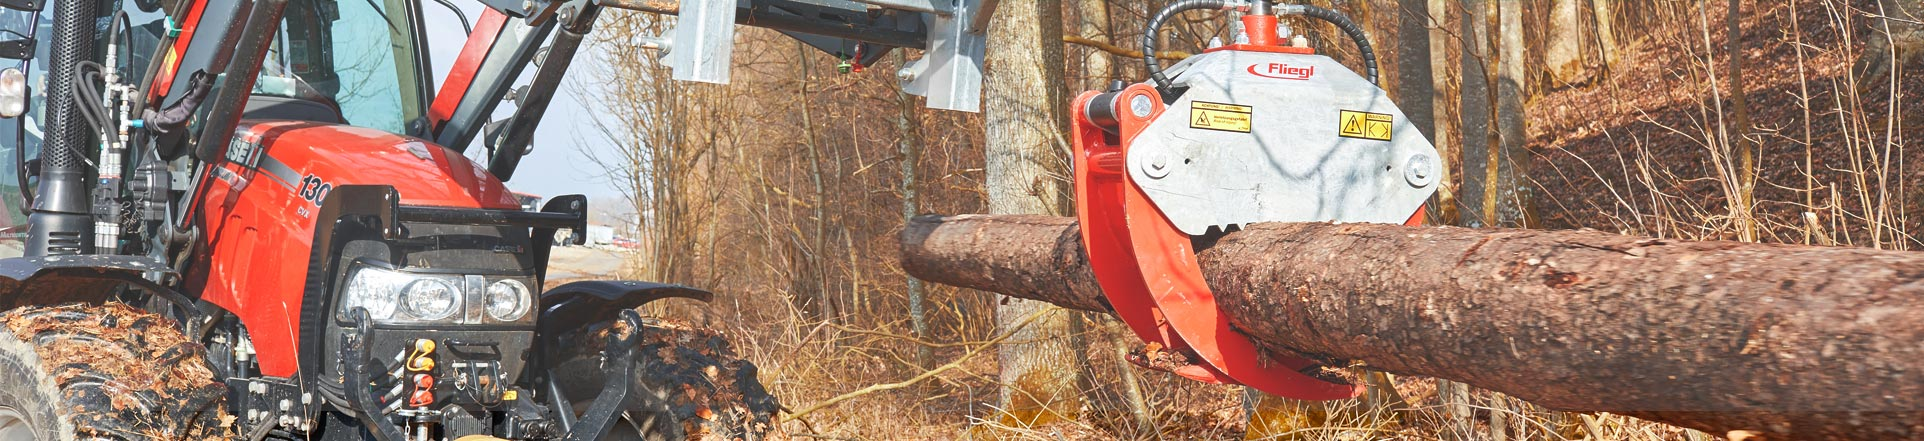 Wood transport attachments